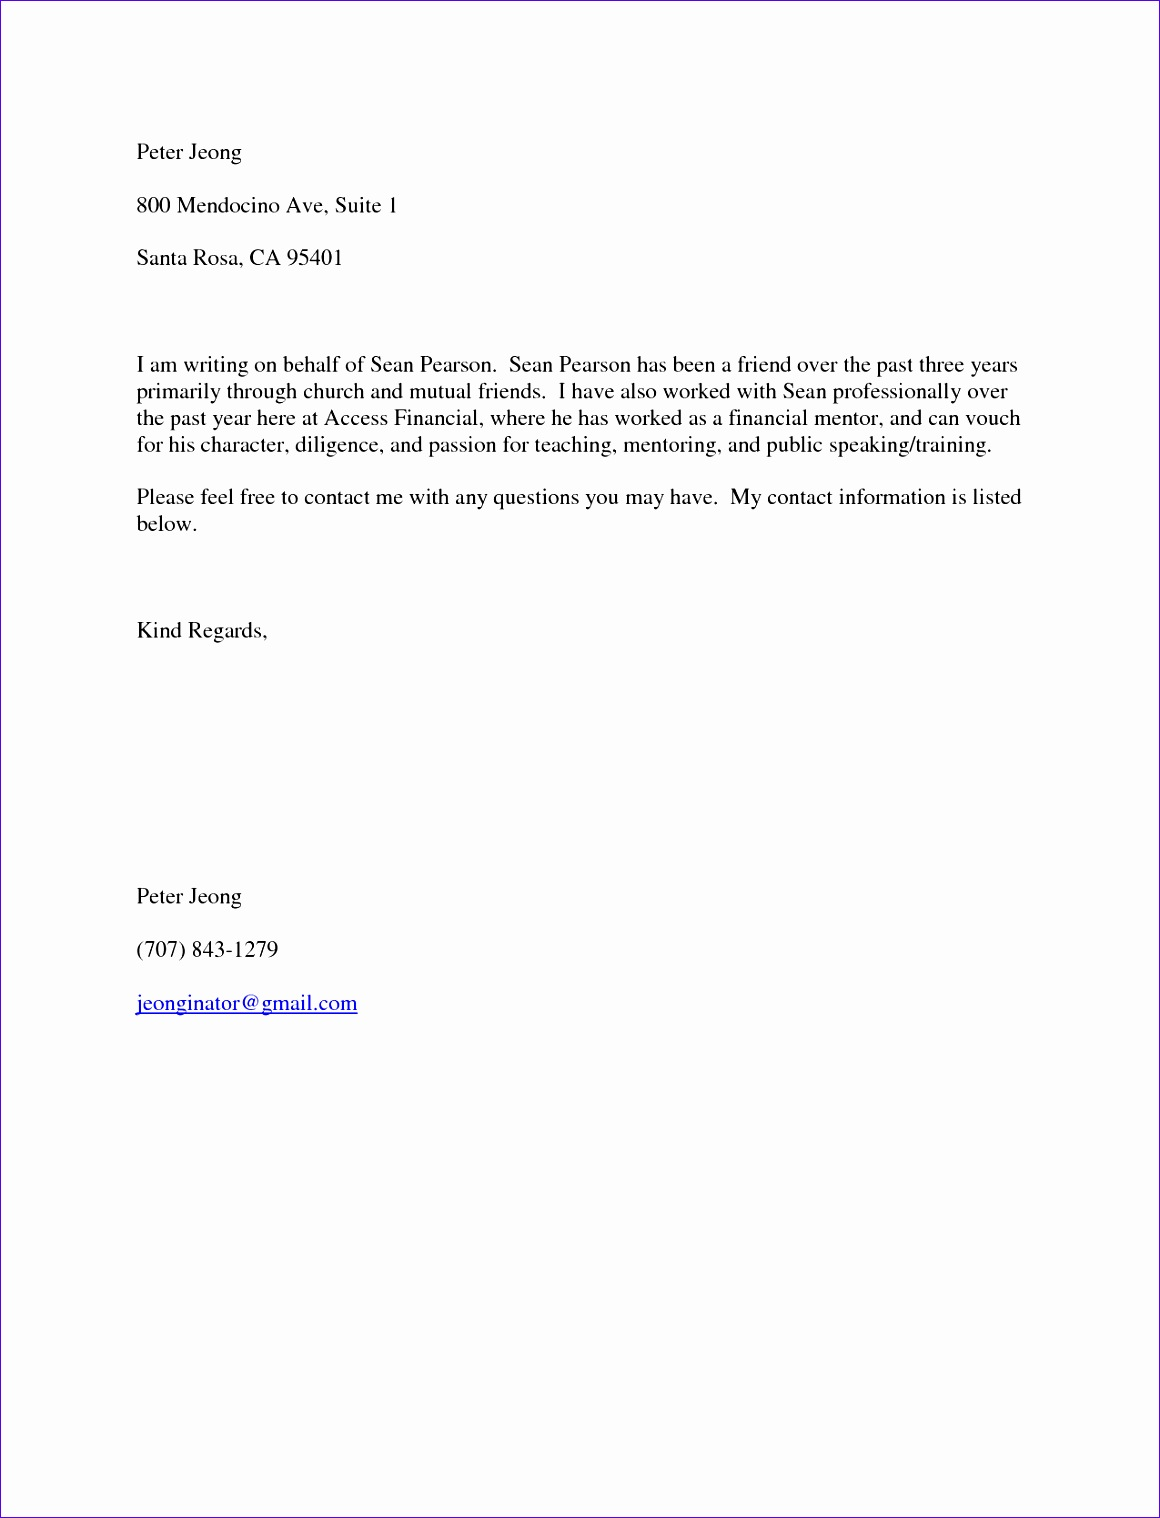 re mendation letter for a friend template 11601518